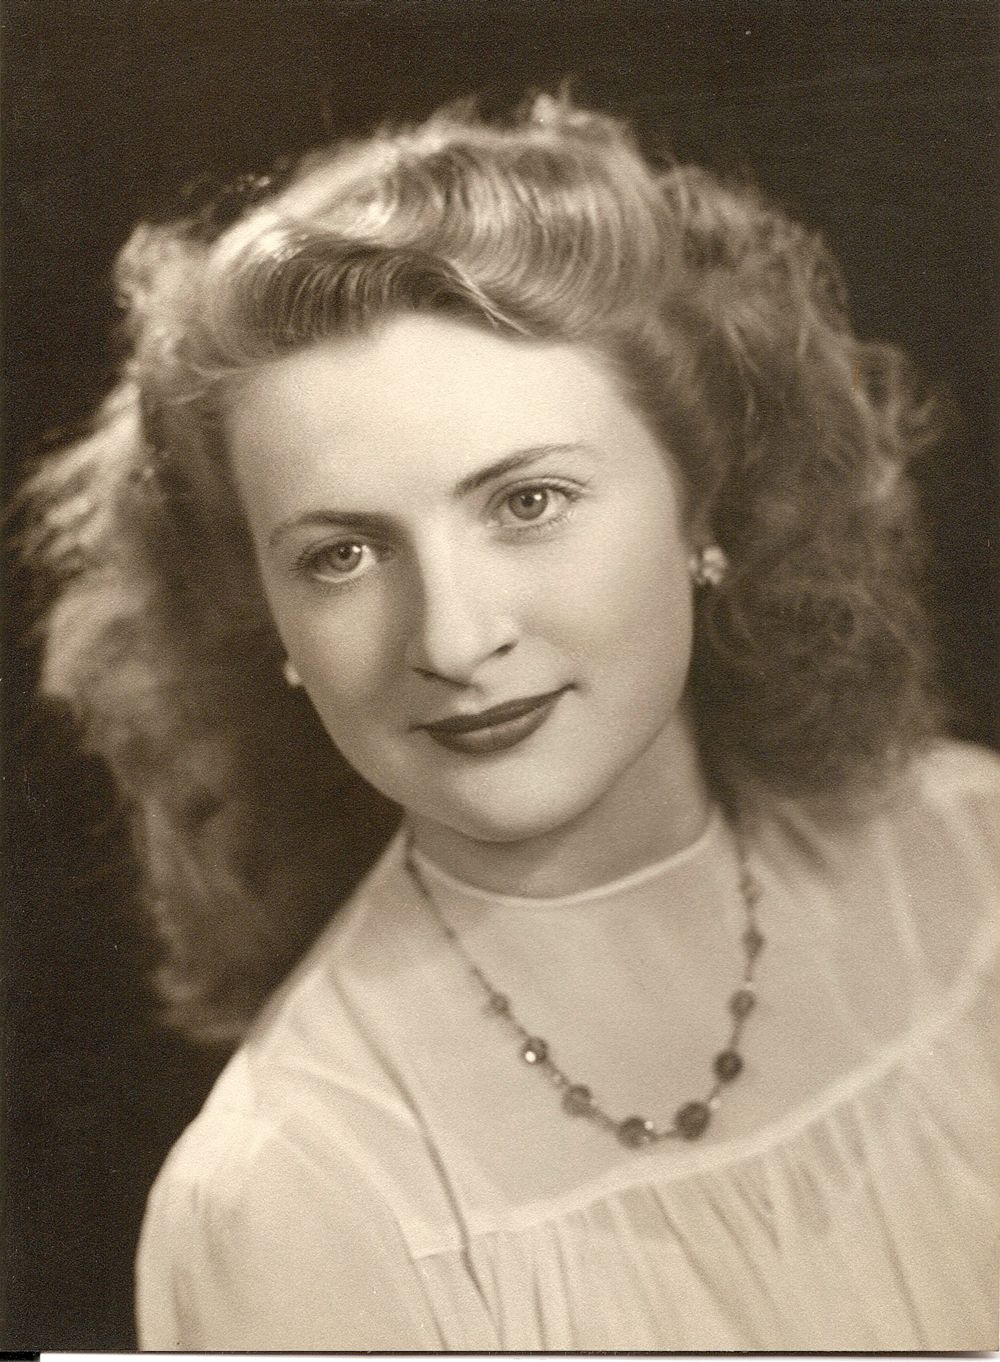 Long, soft waved or curly hairstyles framing the face were fashionable with young women during and after World War II.